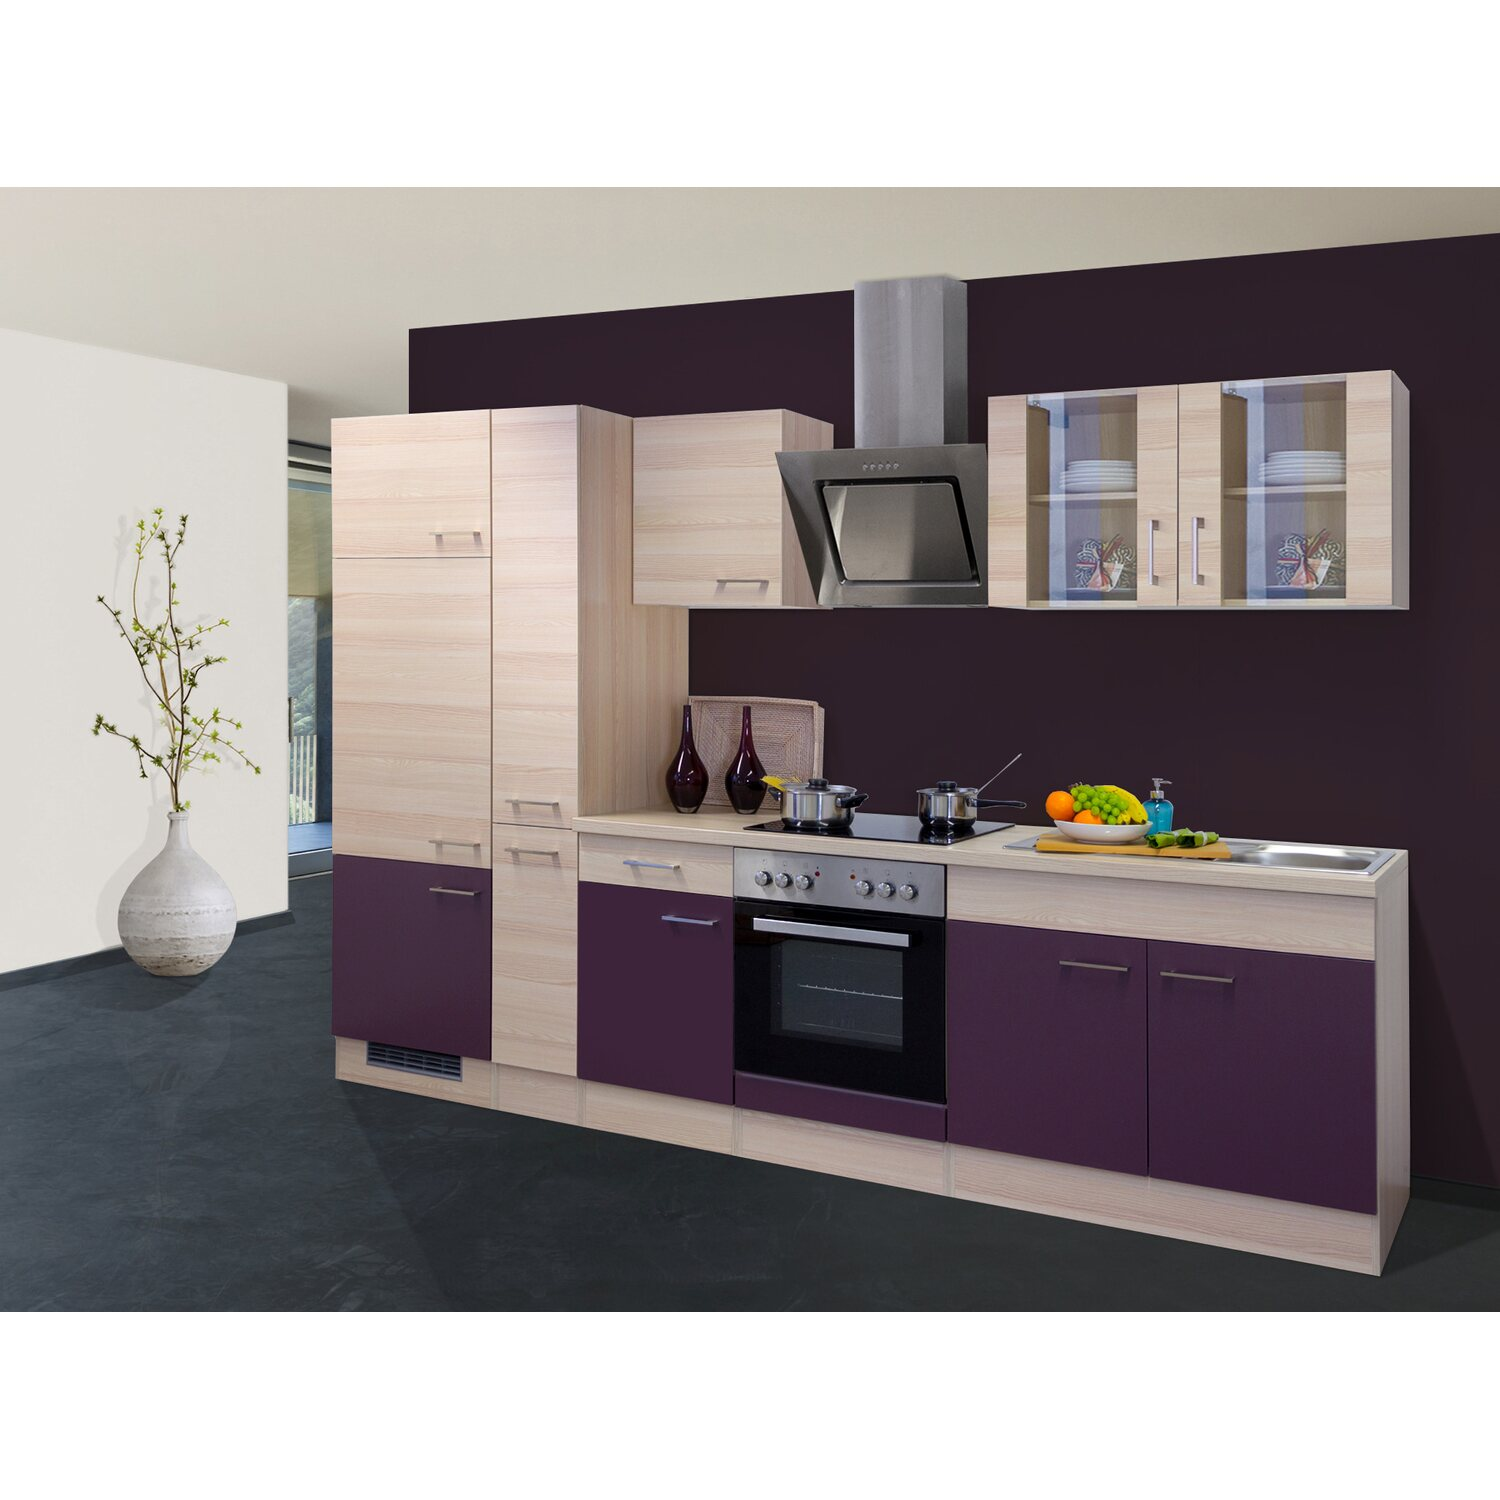 flex well exclusiv k chenzeile focus 300 cm akazie aubergine kaufen bei obi. Black Bedroom Furniture Sets. Home Design Ideas